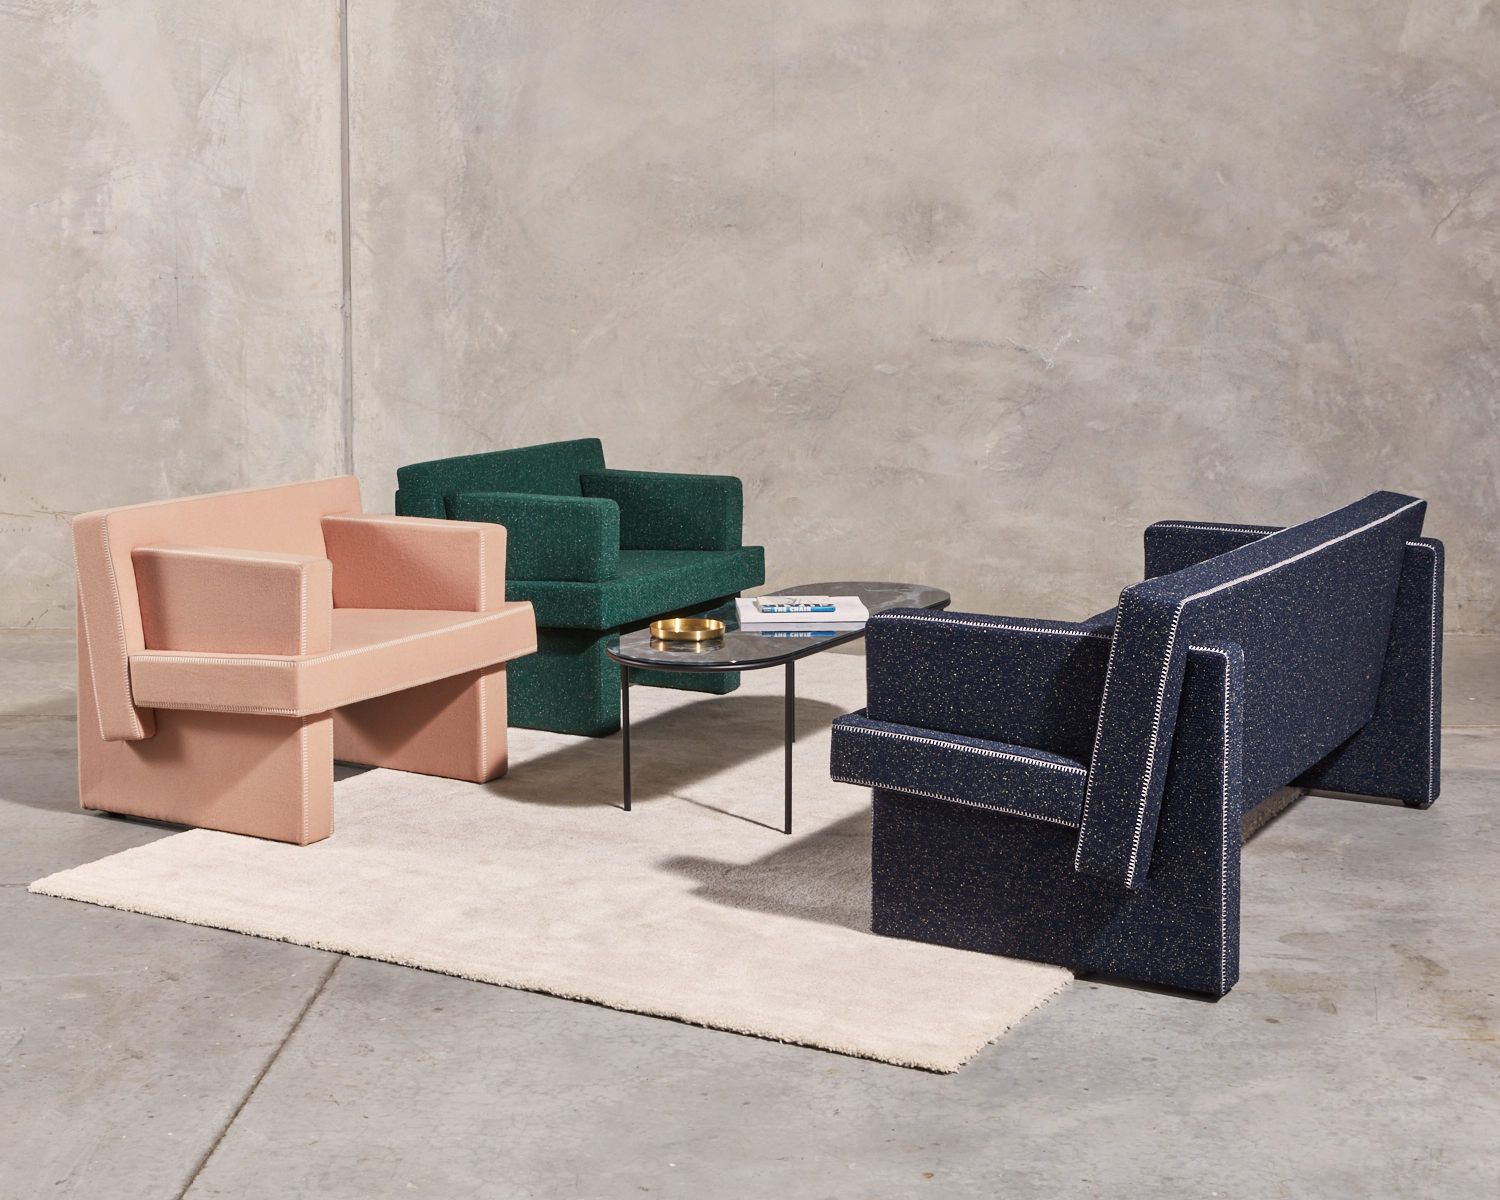 Gibson Karlo's August Lounge Collection for DesignByThem padstyle